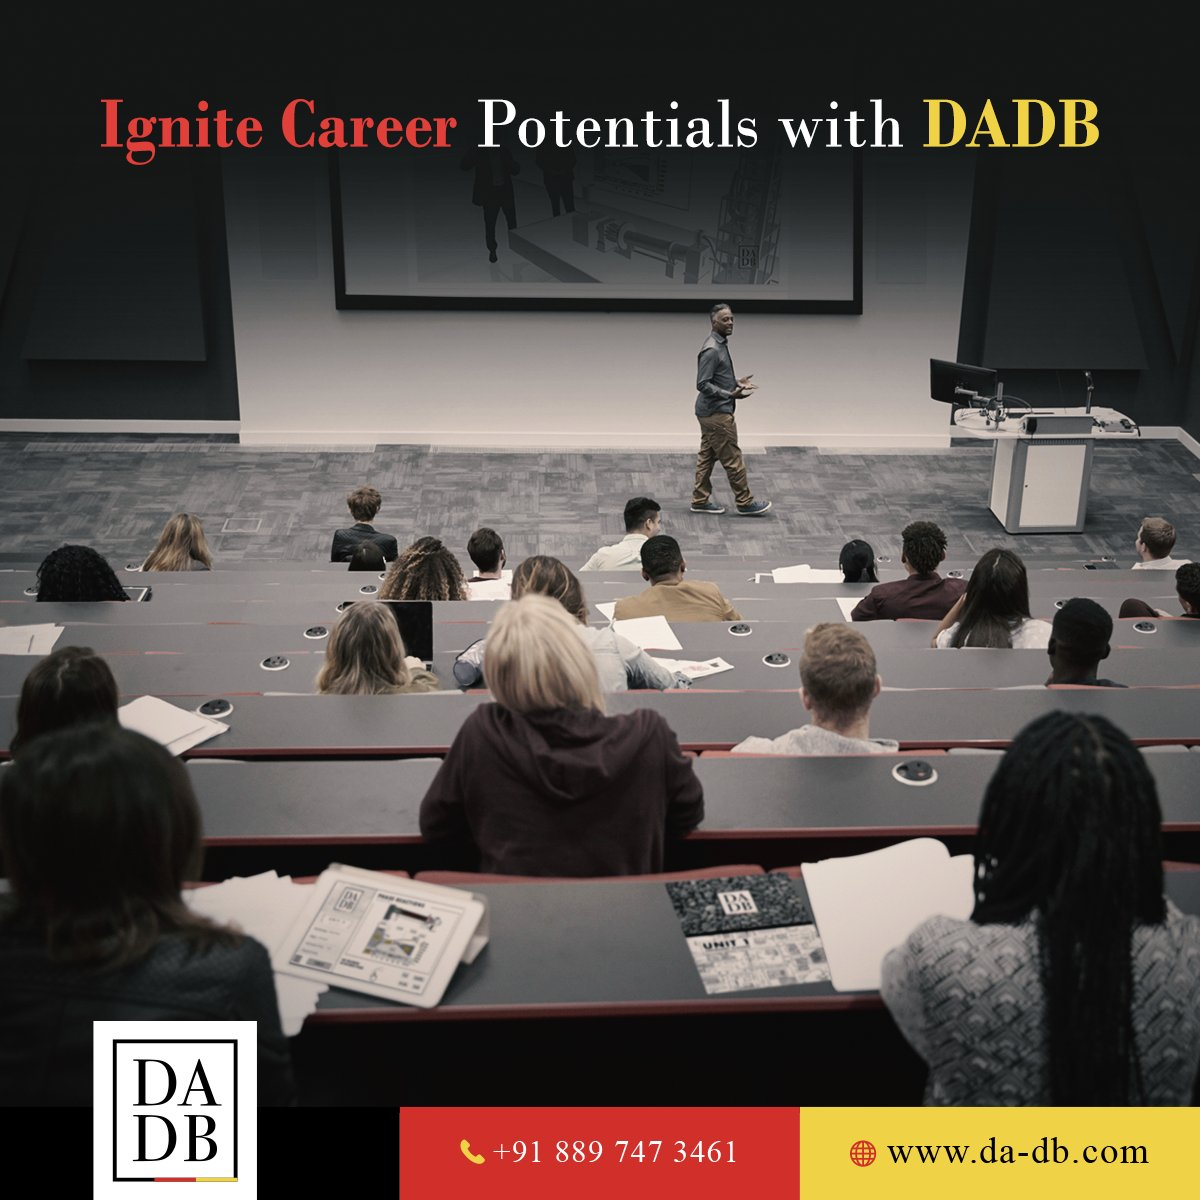 #DADBIndia is offering a diverse range of study opportunities in #GermanEngineering courses, designed by the finest German Professors. These #BlendedLearning courses open up excellent career prospects for Indian students in leading #architectural companies of India and beyond.pic.twitter.com/HUApvg49iY